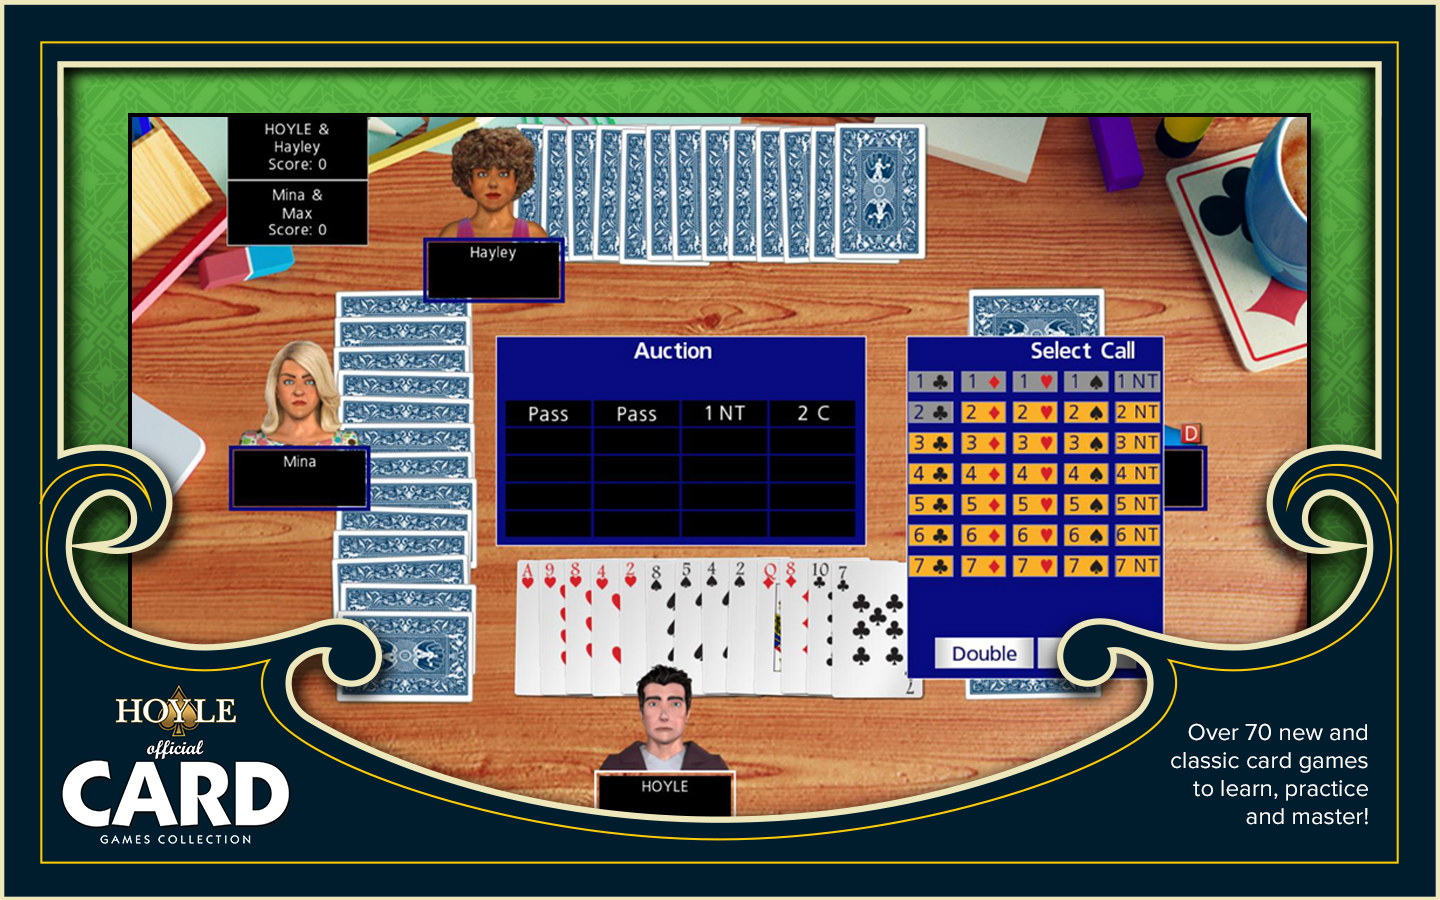 Hoyle Official Card Games Steam PC Online Game Code ...